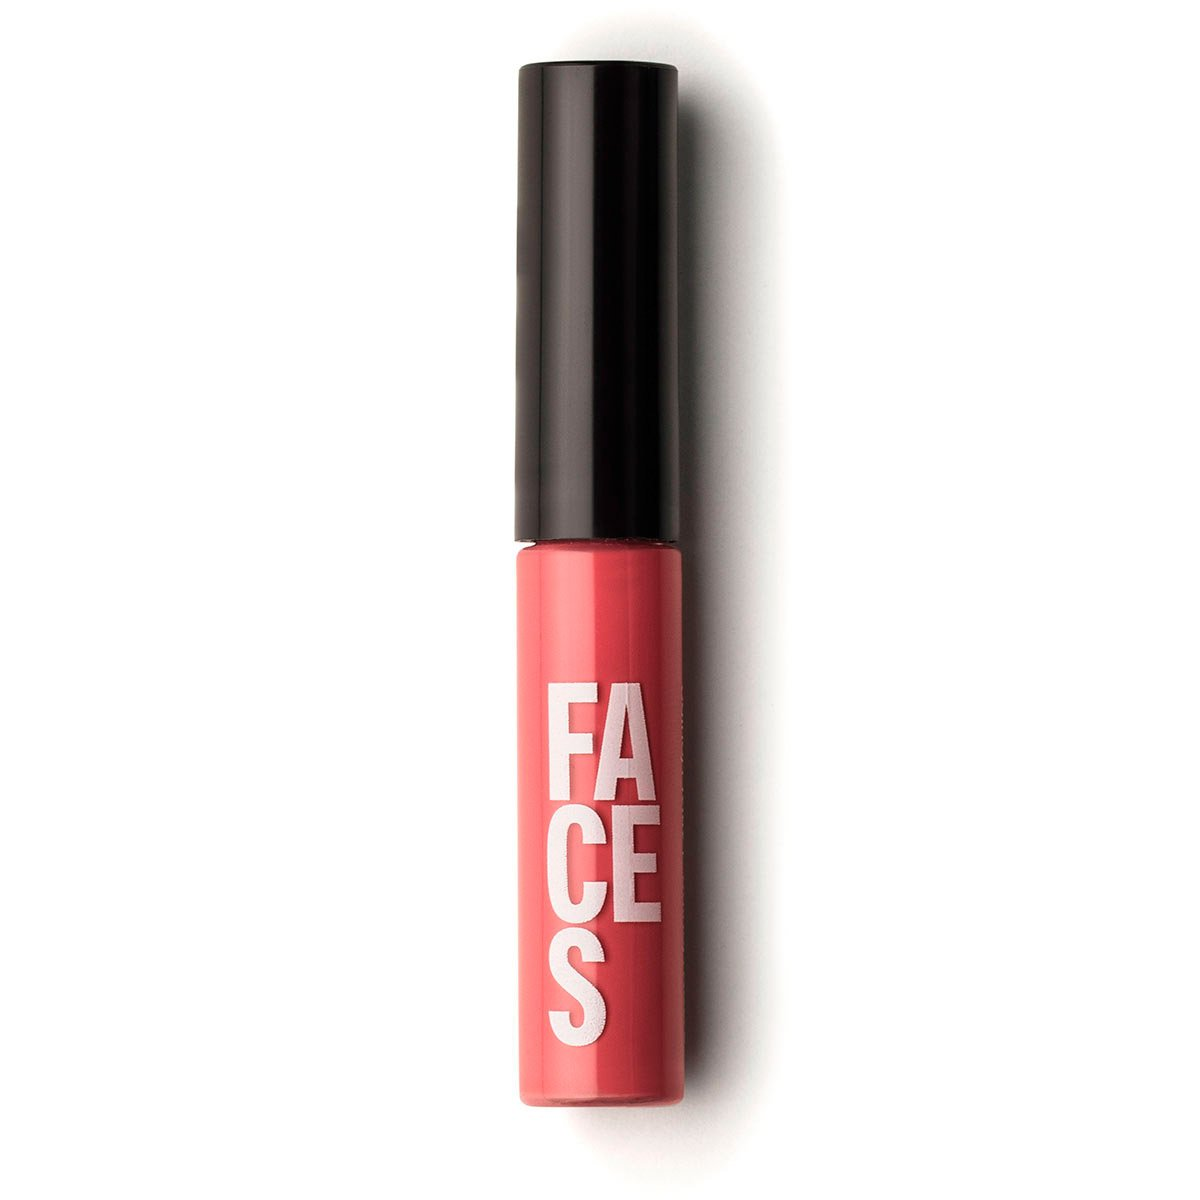 Amazon.com : Linha Faces (Matte) Natura - Batom Liquido Rosa Vintage 3, 5 Ml - (Natura Faces (Matte) Collection - Vintage Pink Liquid Lipstick 0.1 Fl Oz) : ...